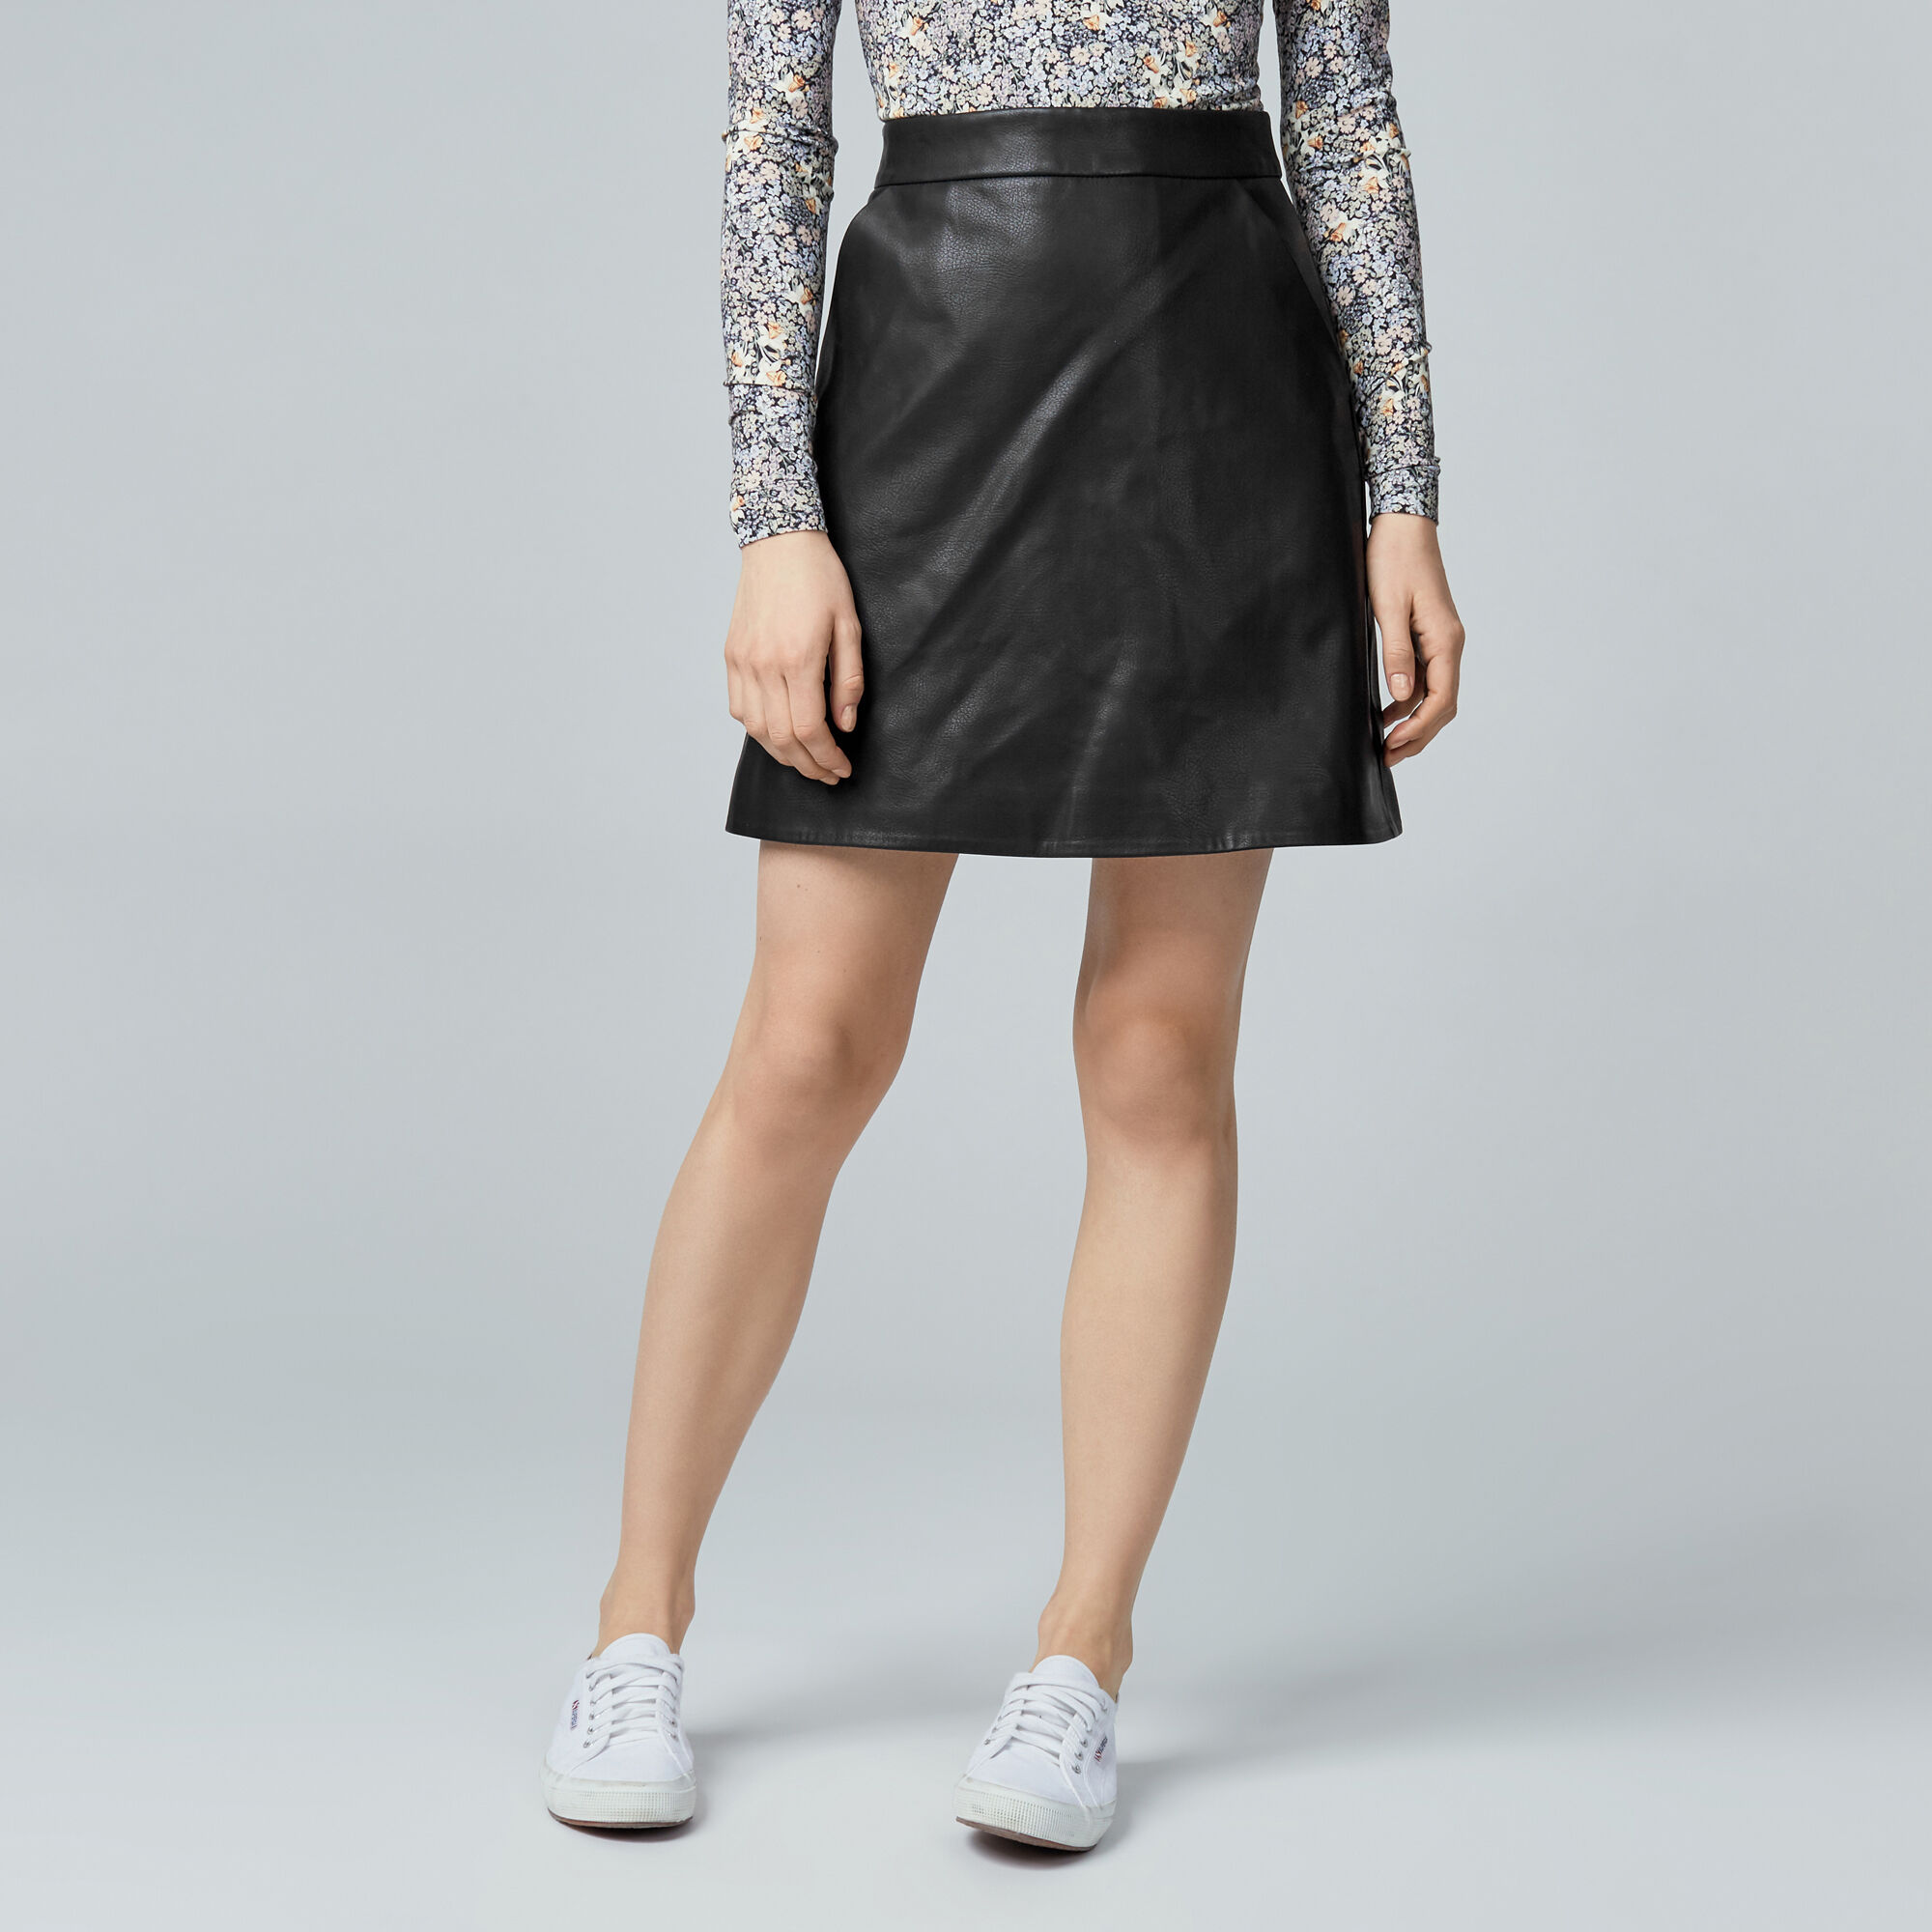 Warehouse, Faux Leather Pelmet Skirt Black 1